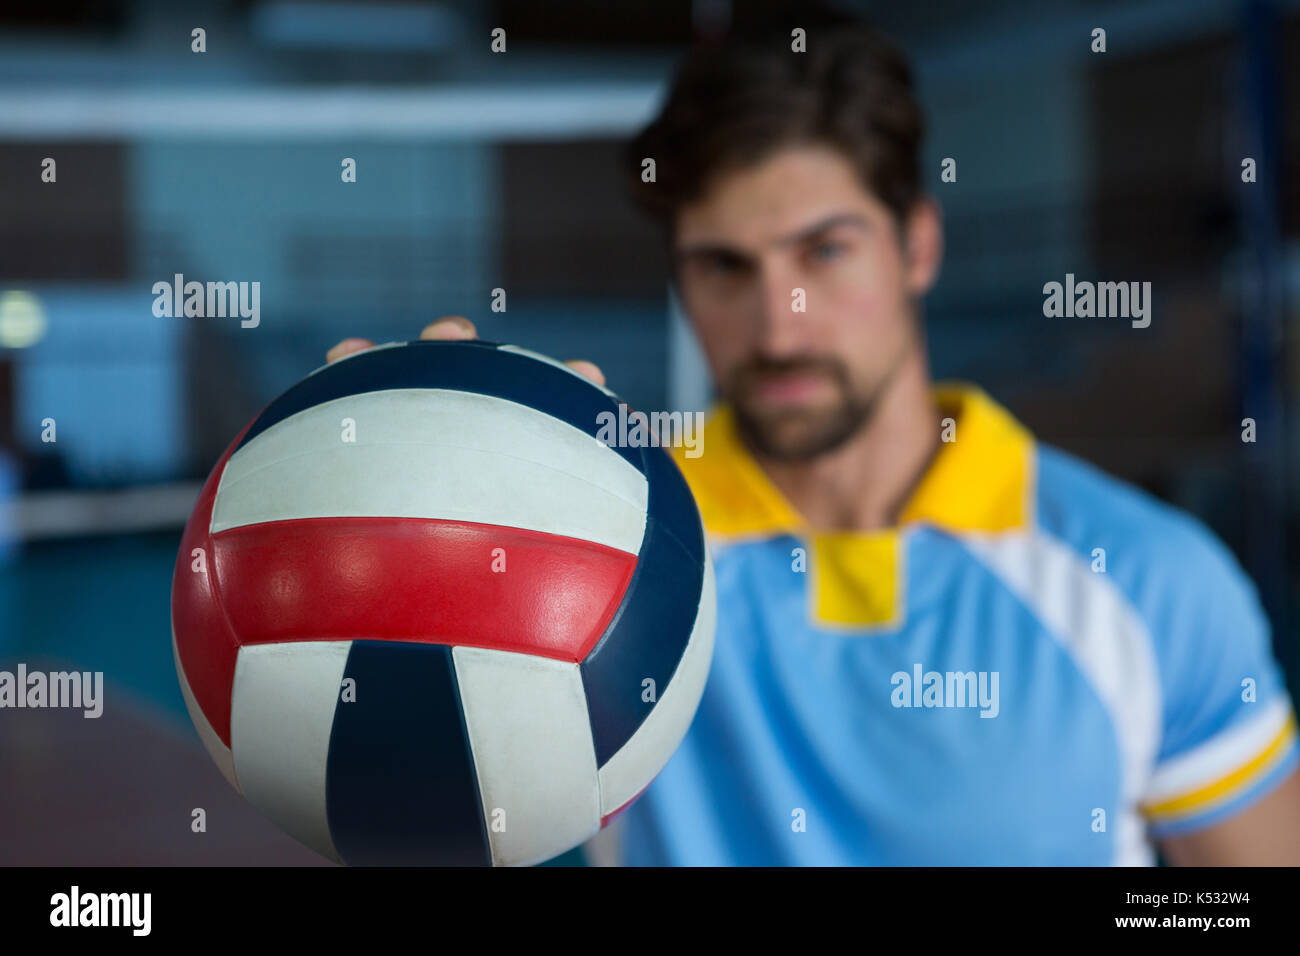 Male sportsperson holding volleyball at court - Stock Image